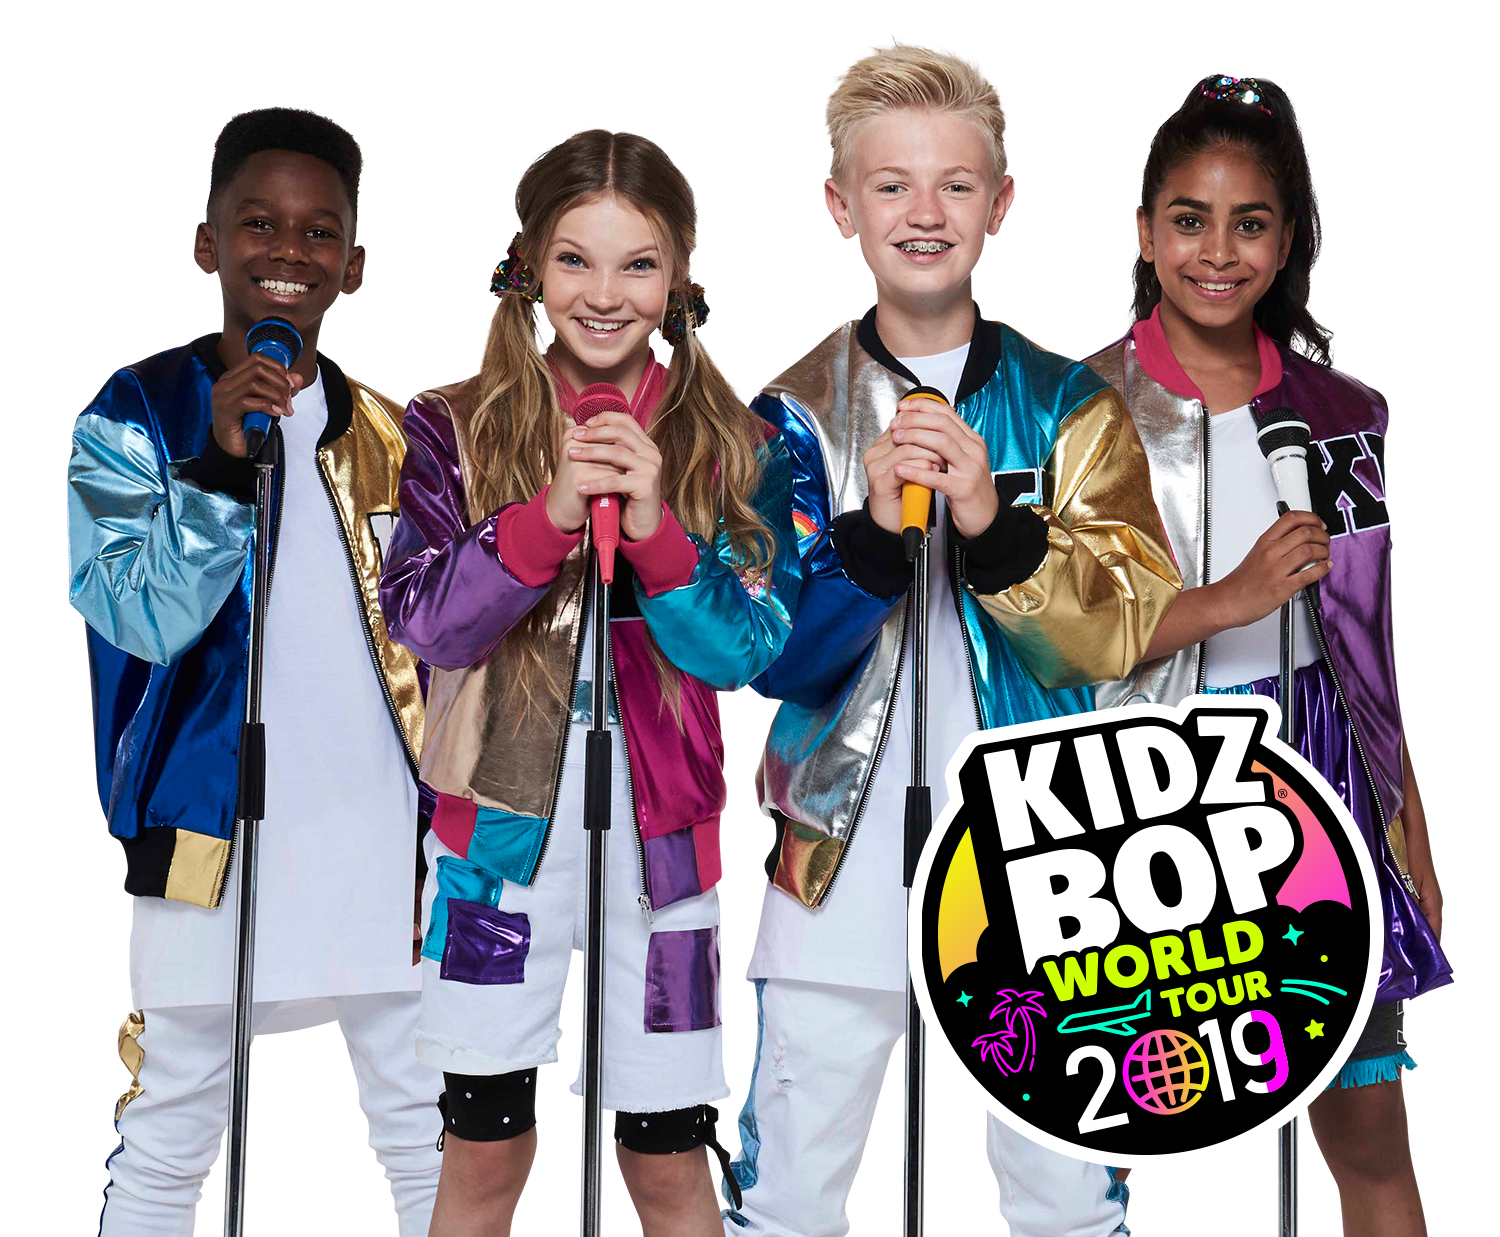 Kidz Bop Kidz   The number one children's music brand in the US, Kidz Bop Kids, comes to Eventim Apollo this Easter. They've had two UK Top 10 Albums, featuring family-friendly versions of today's biggest pop hits. A great family friendly first concert for your kids.